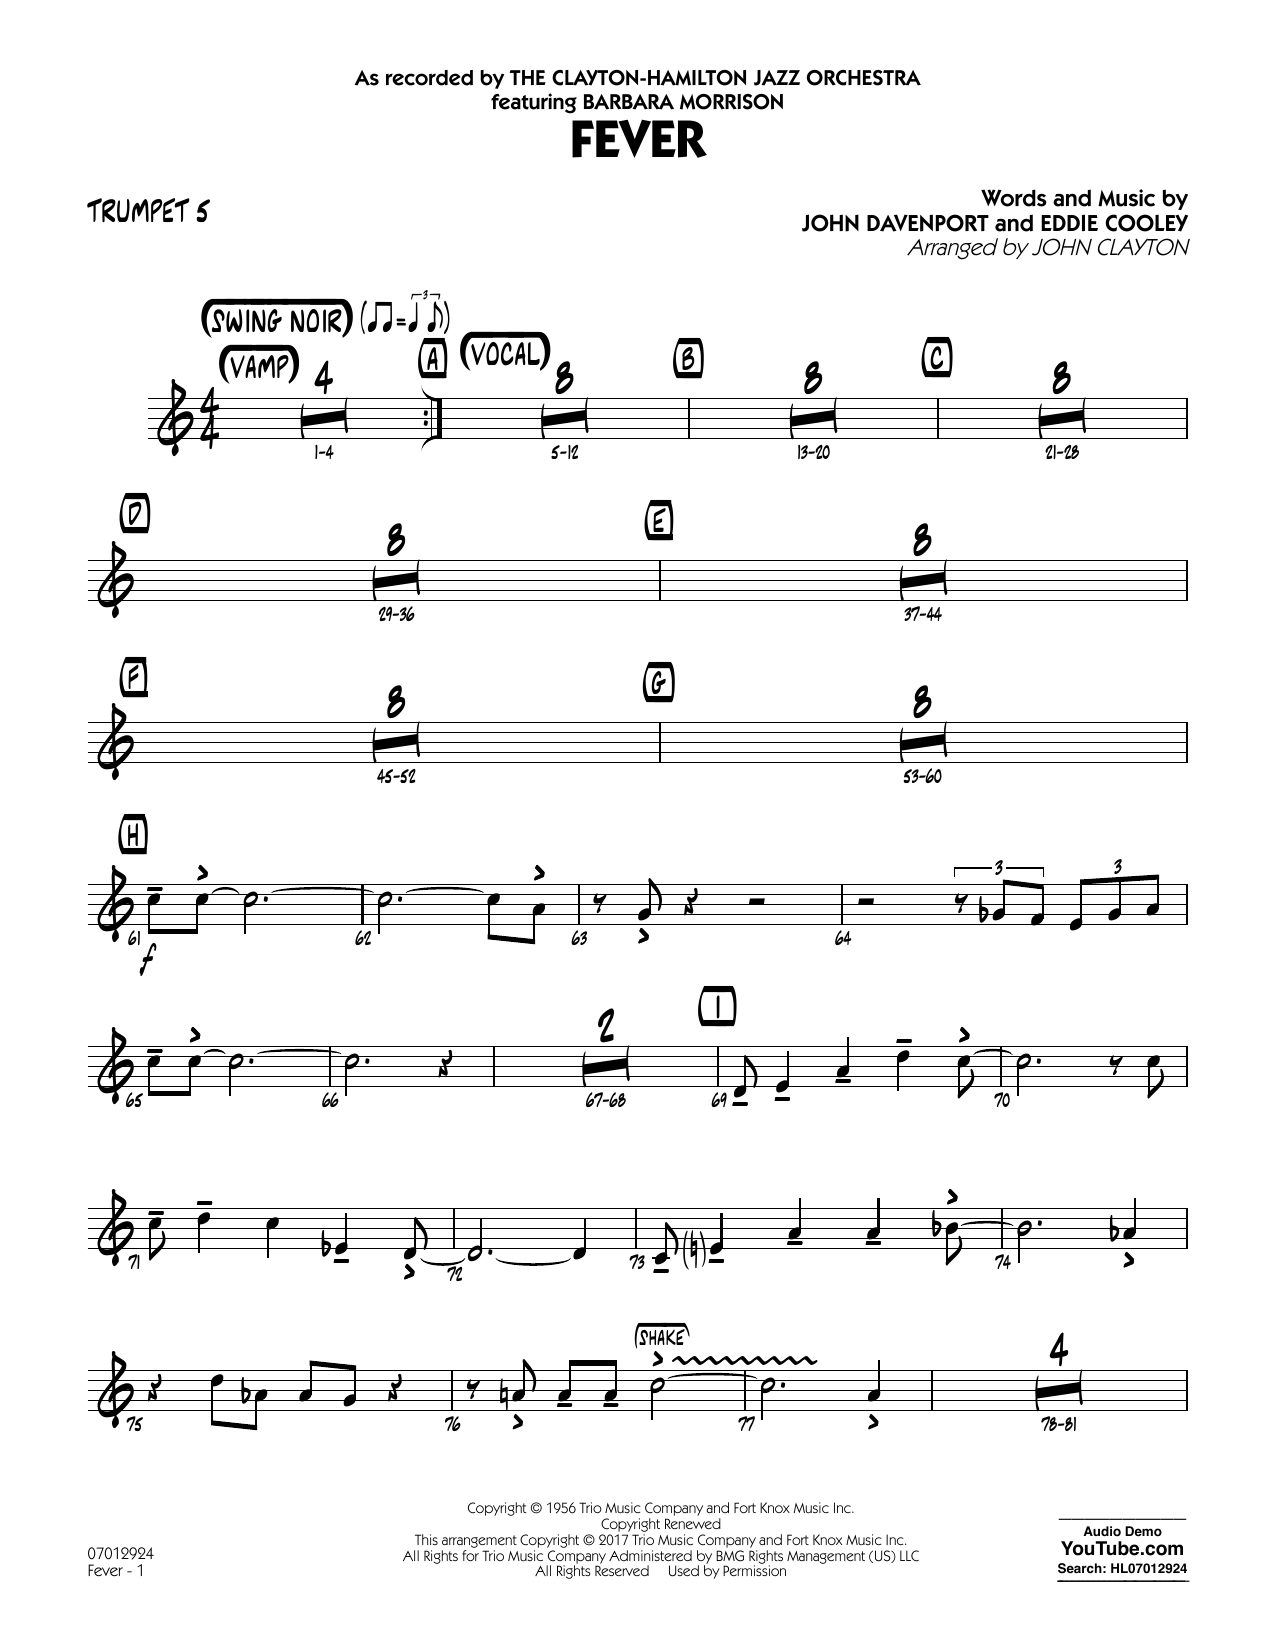 Fever (Key: G min) - Trumpet 5 - Sheet Music to Download